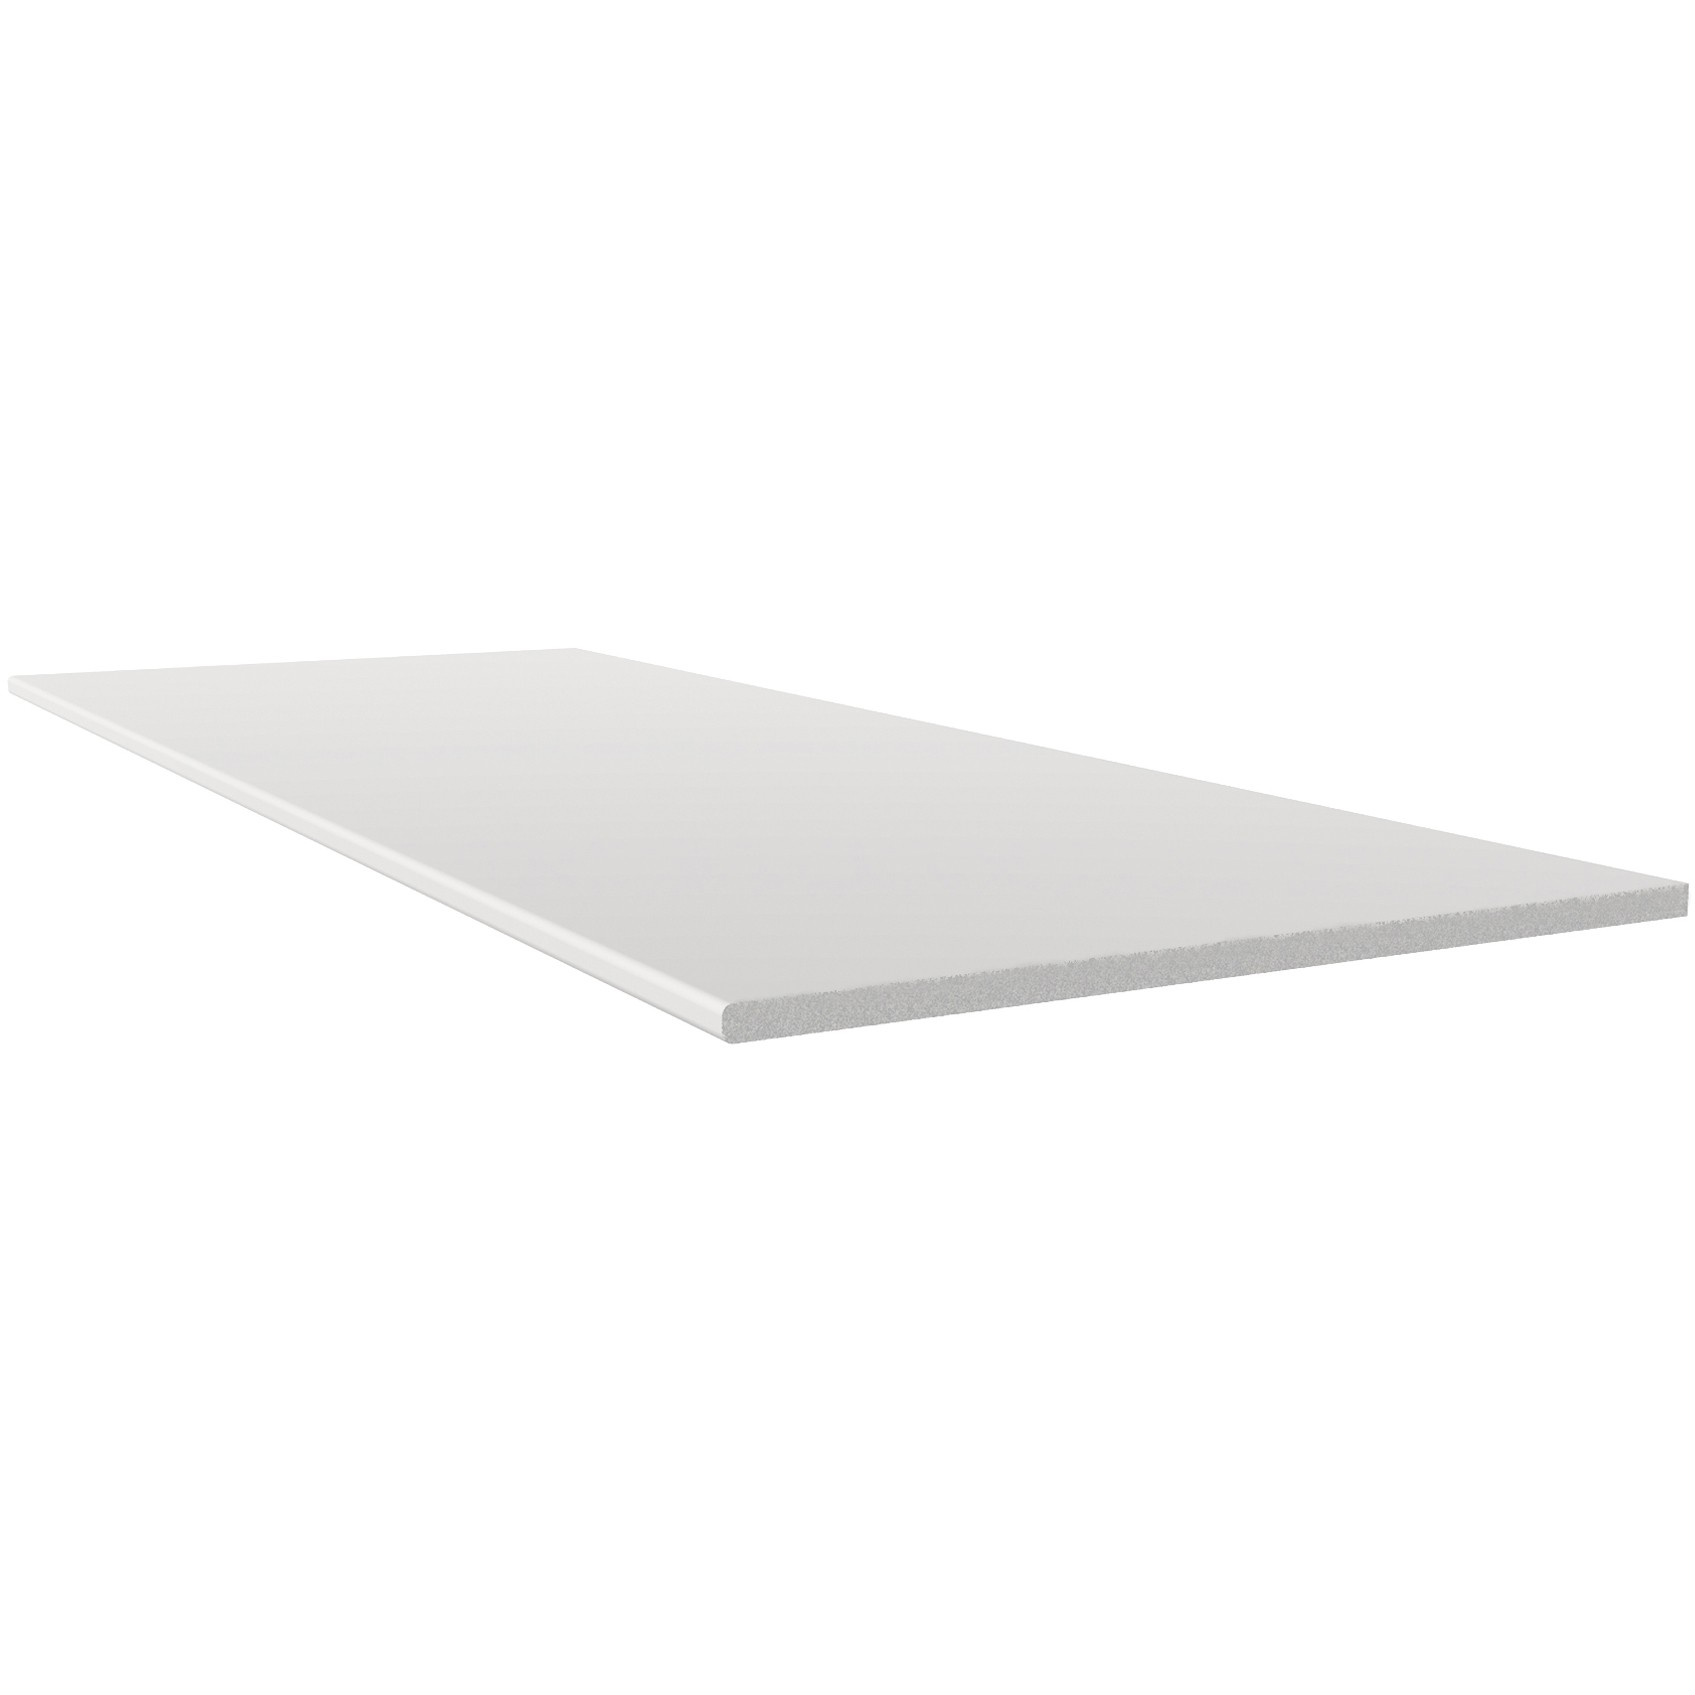 Freefoam 10mm Solid Soffit Board - White, 200mm, 5 metre